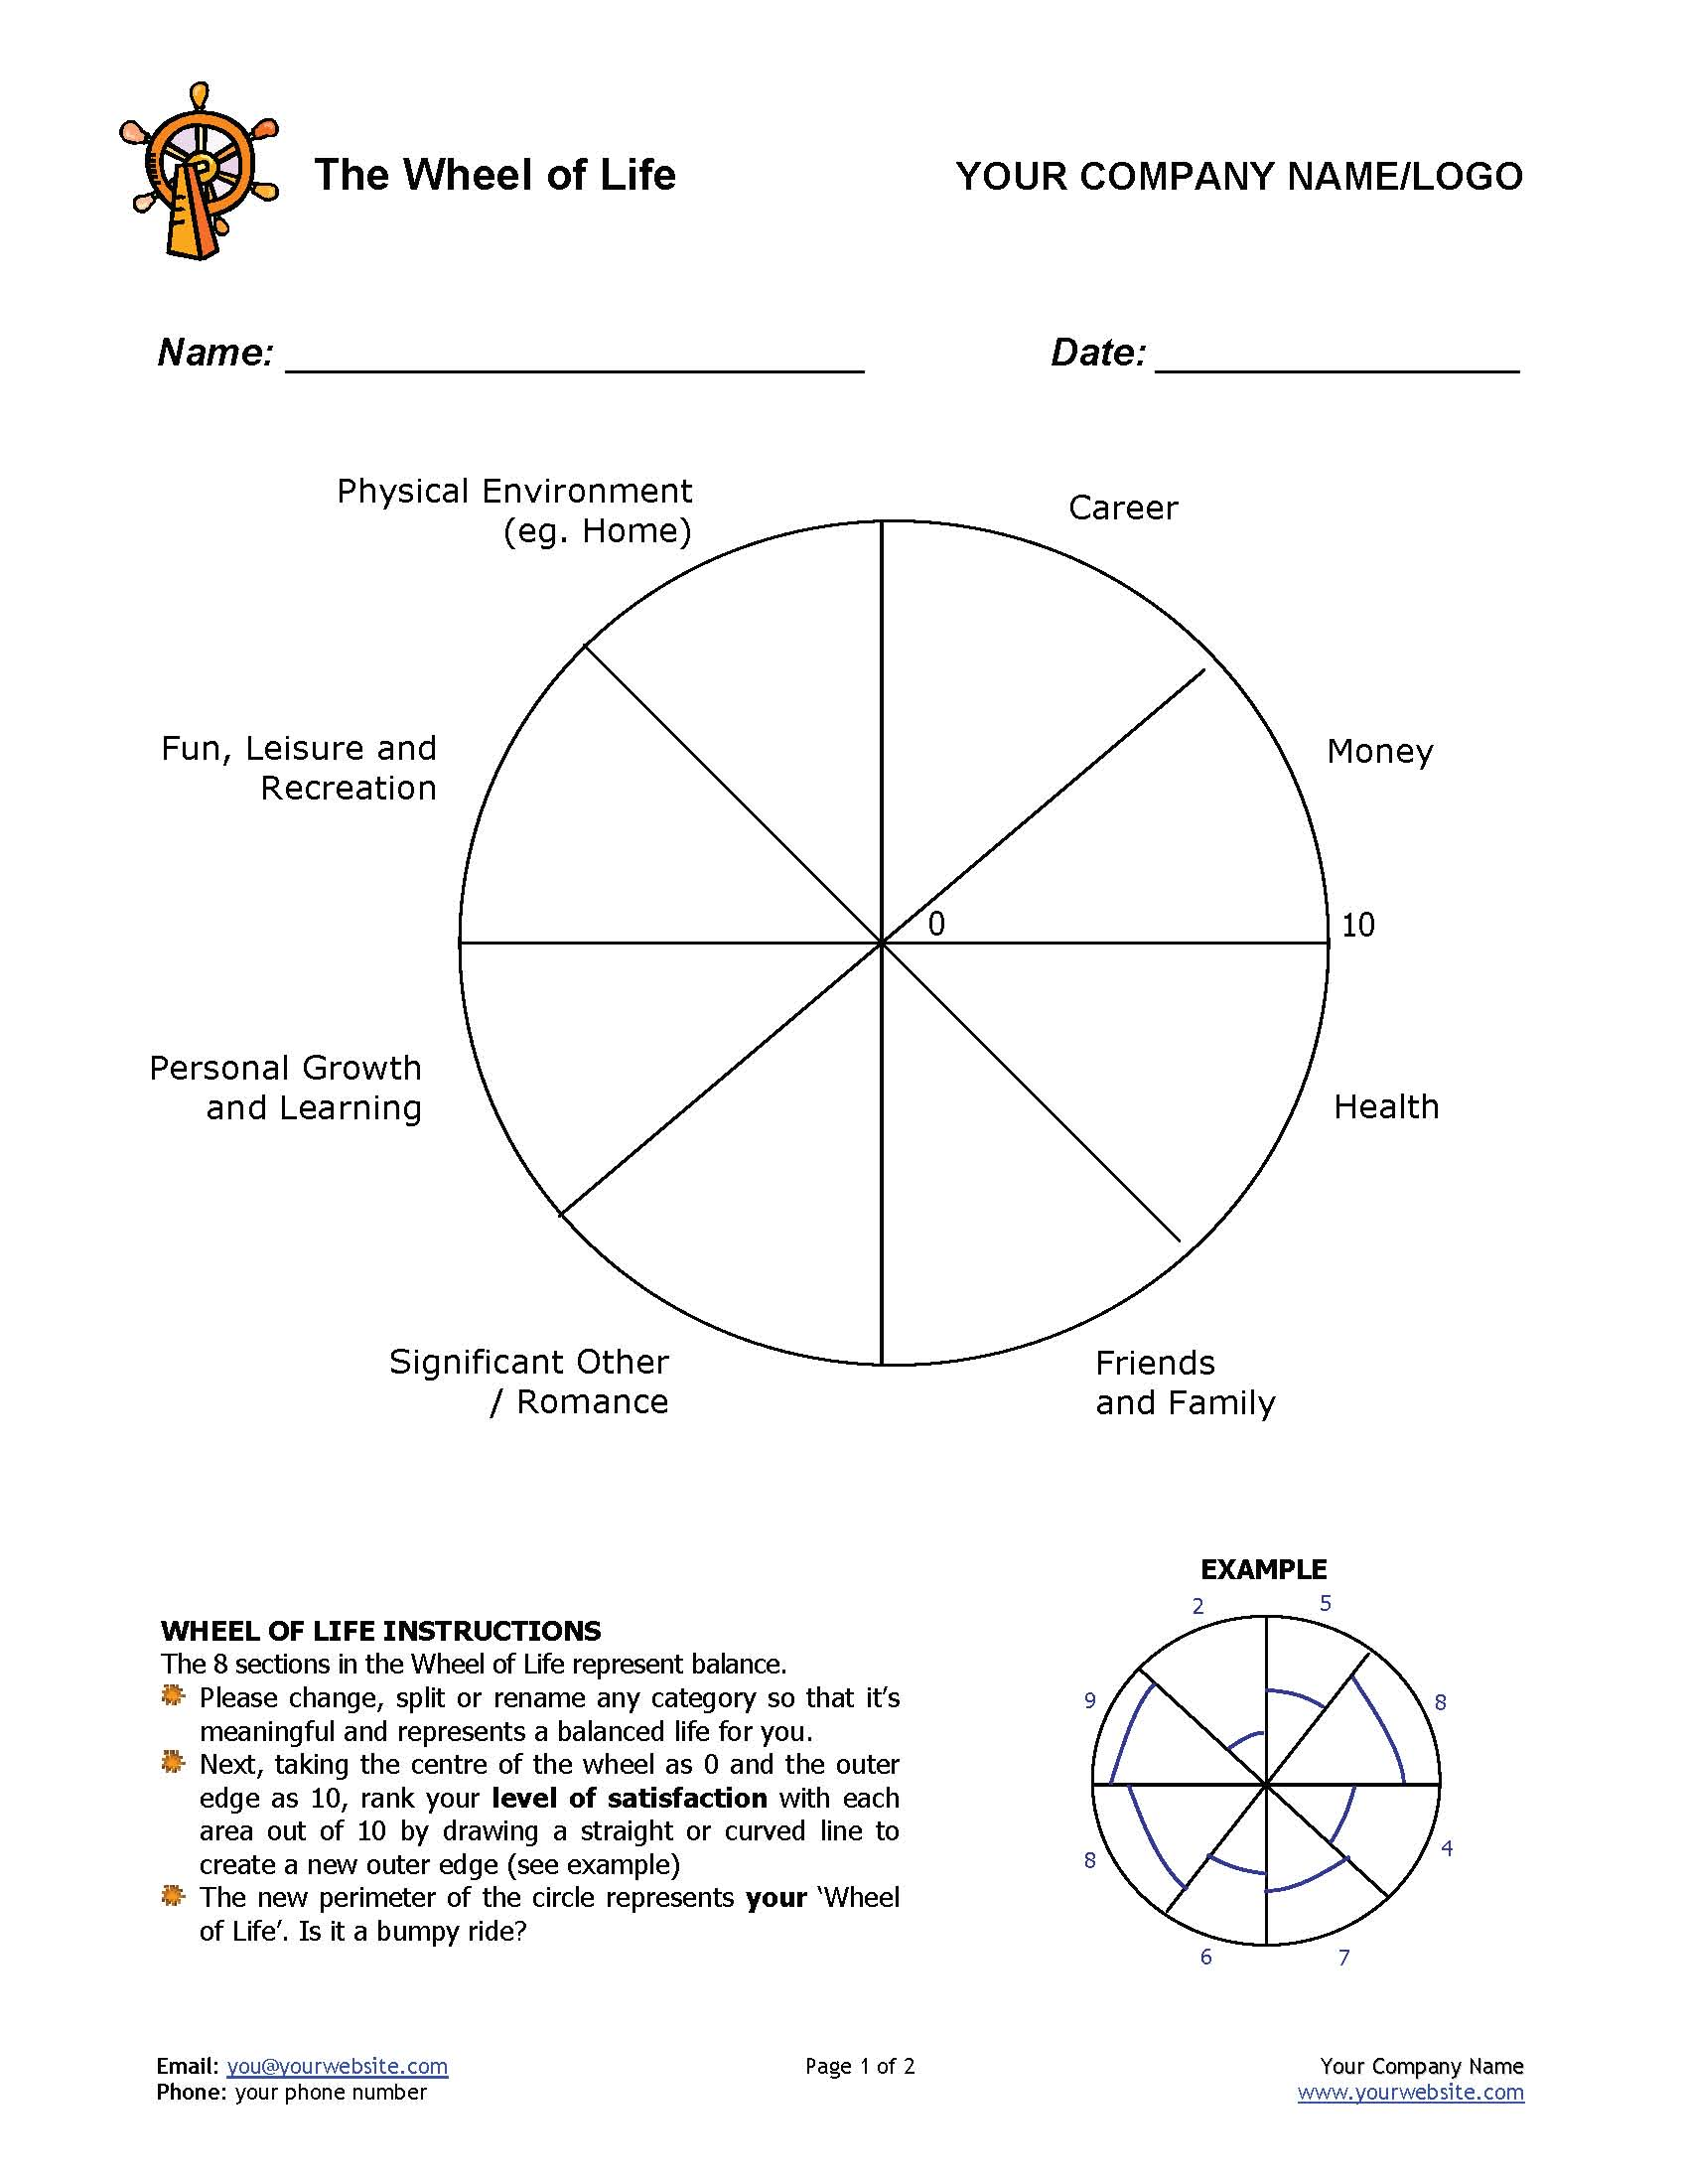 12 Awesome New Ways To Use The Wheel Of Life Tool In Your